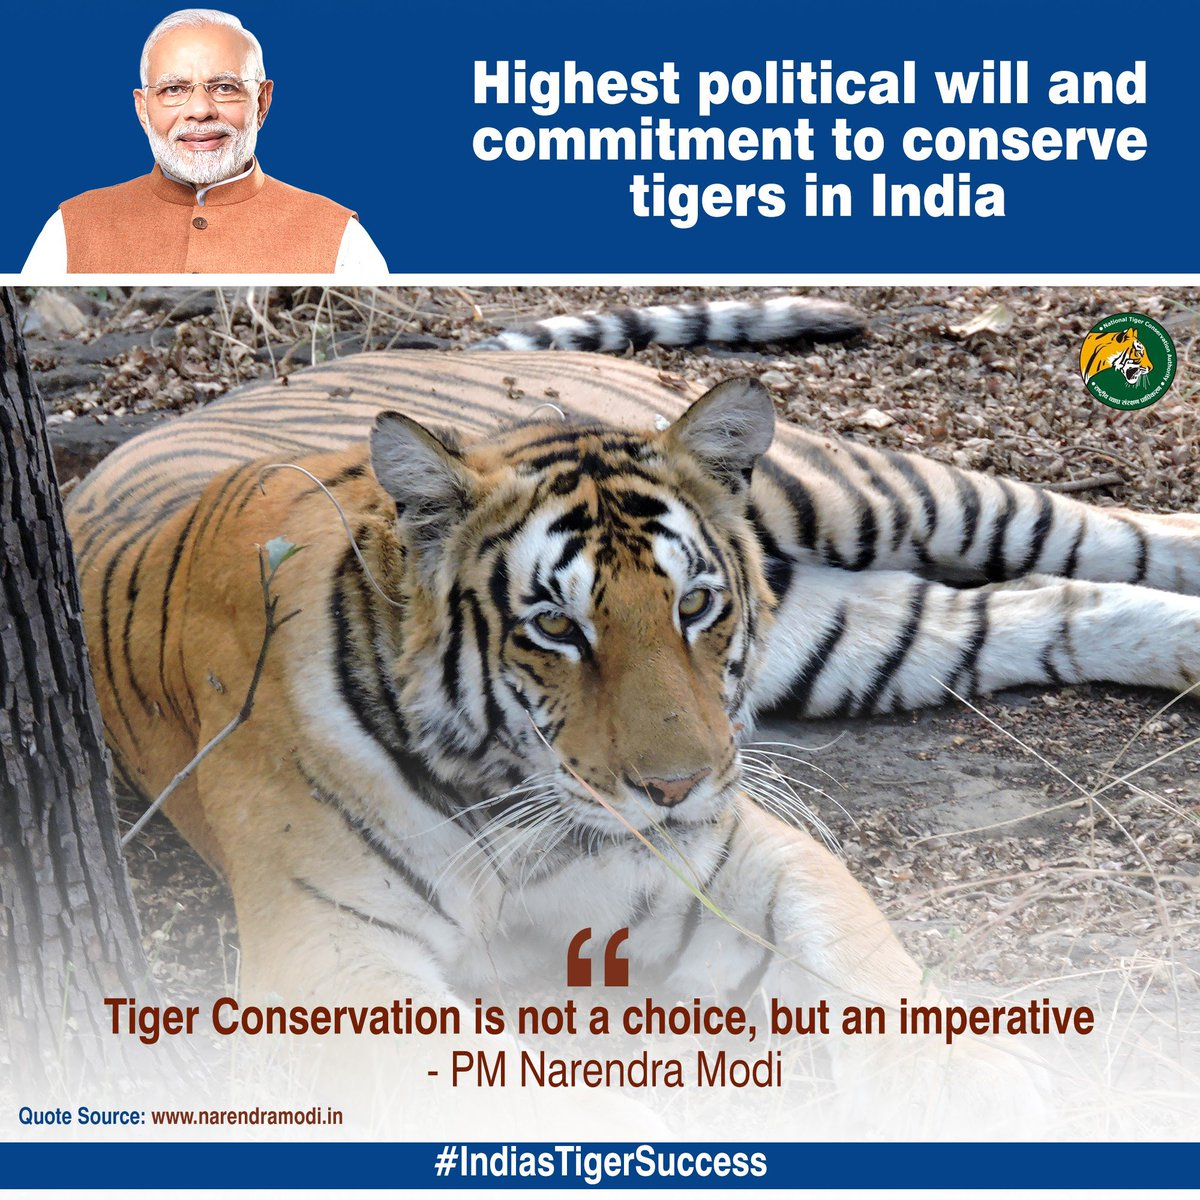 Home to 70% of the global tiger population, India's efforts towards tiger conservation have yielded unprecedented results in last 6 years. #IndiasTigerSuccess under PM @narendramodi Ji's leadership, reflects Govt's resolve to ensure our pride - our National Animal keeps roaring🐅